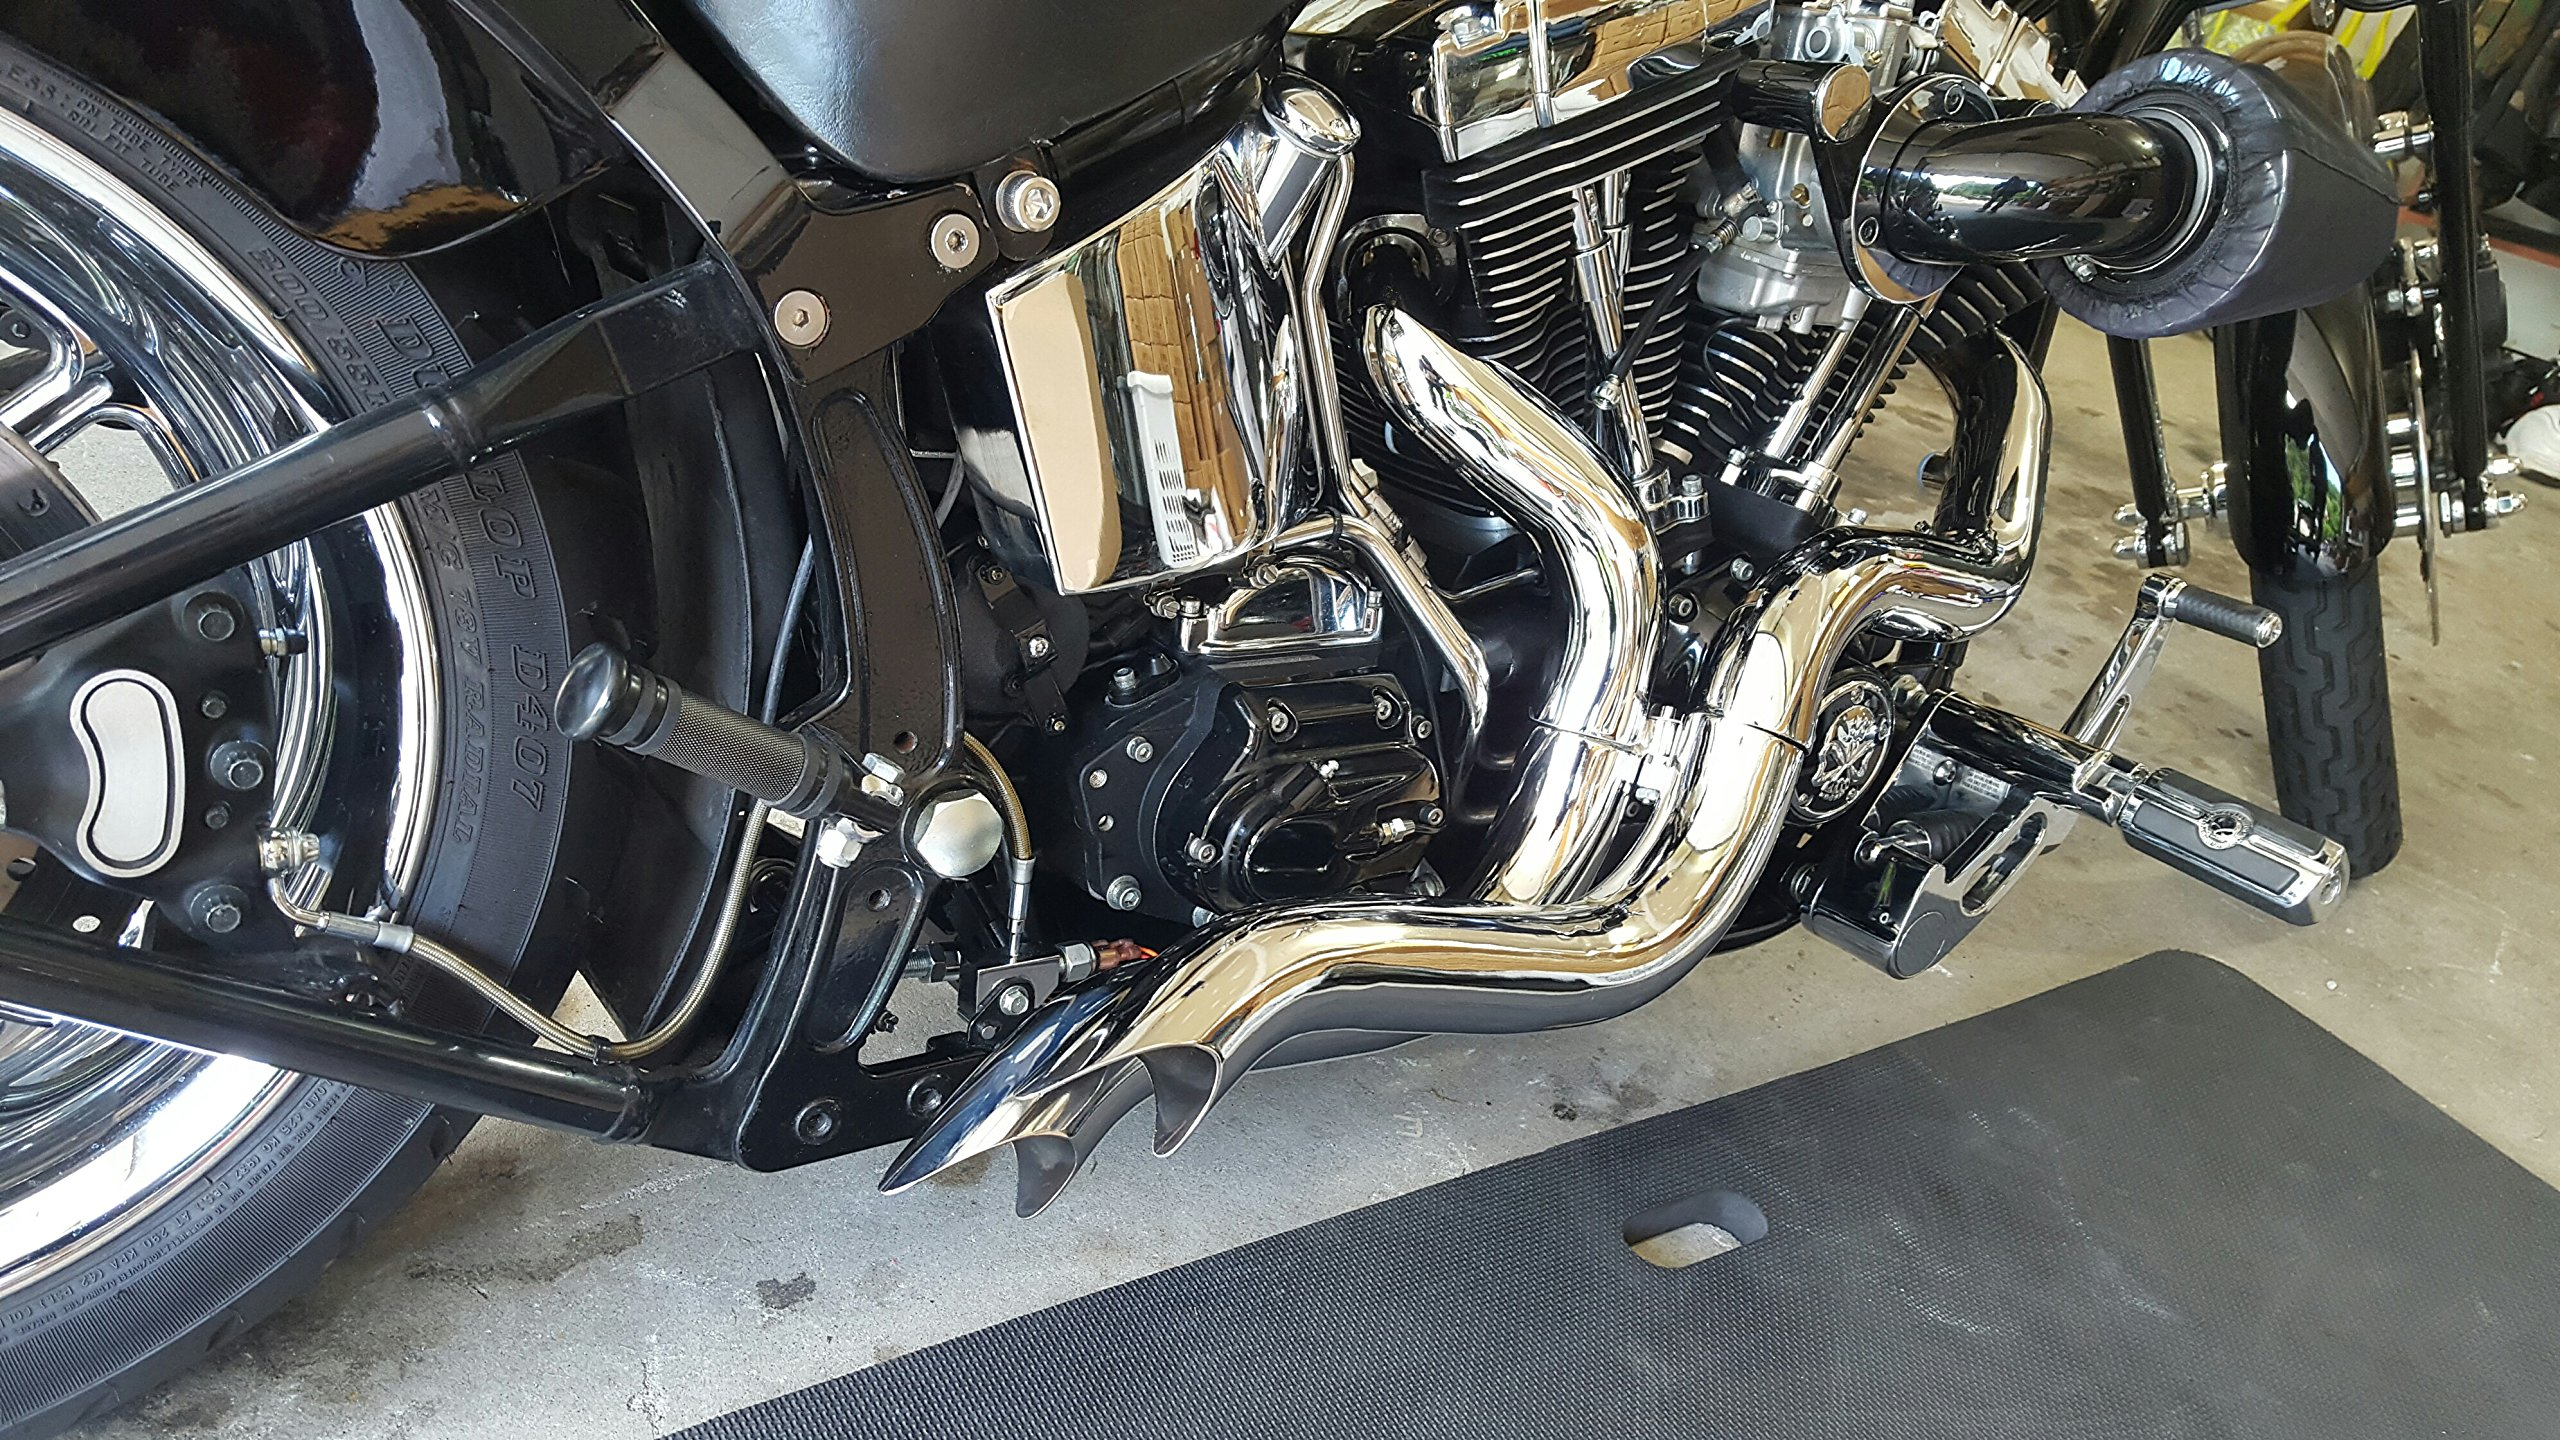 """ACCESSORIESHD CHROME-LAF AMBUSH WITH HEAT SHIELDS Step Tuned 2-1/2"""" Straight Thru Racing Pipes FOR SOFTAILS AND BAGGERS AND CUSTOMS DYNAS REQUIRE SMALL MODIFICATIONS"""